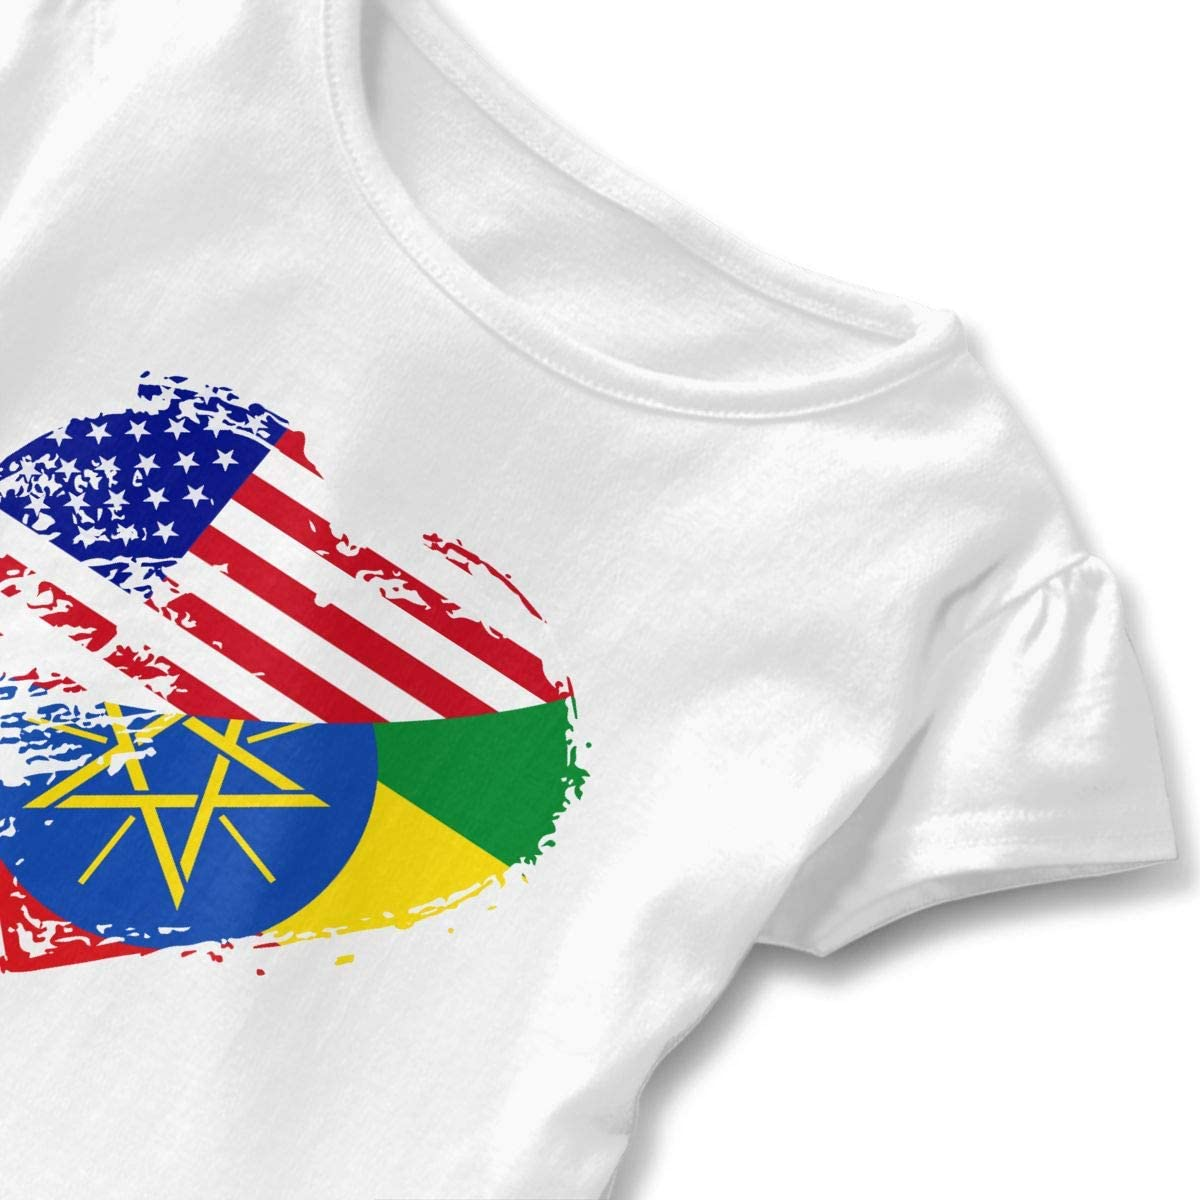 26NSHIRT Ethiopia American Heart Flag Toddler Baby Girl Short Sleeve Fashion T-Shirts